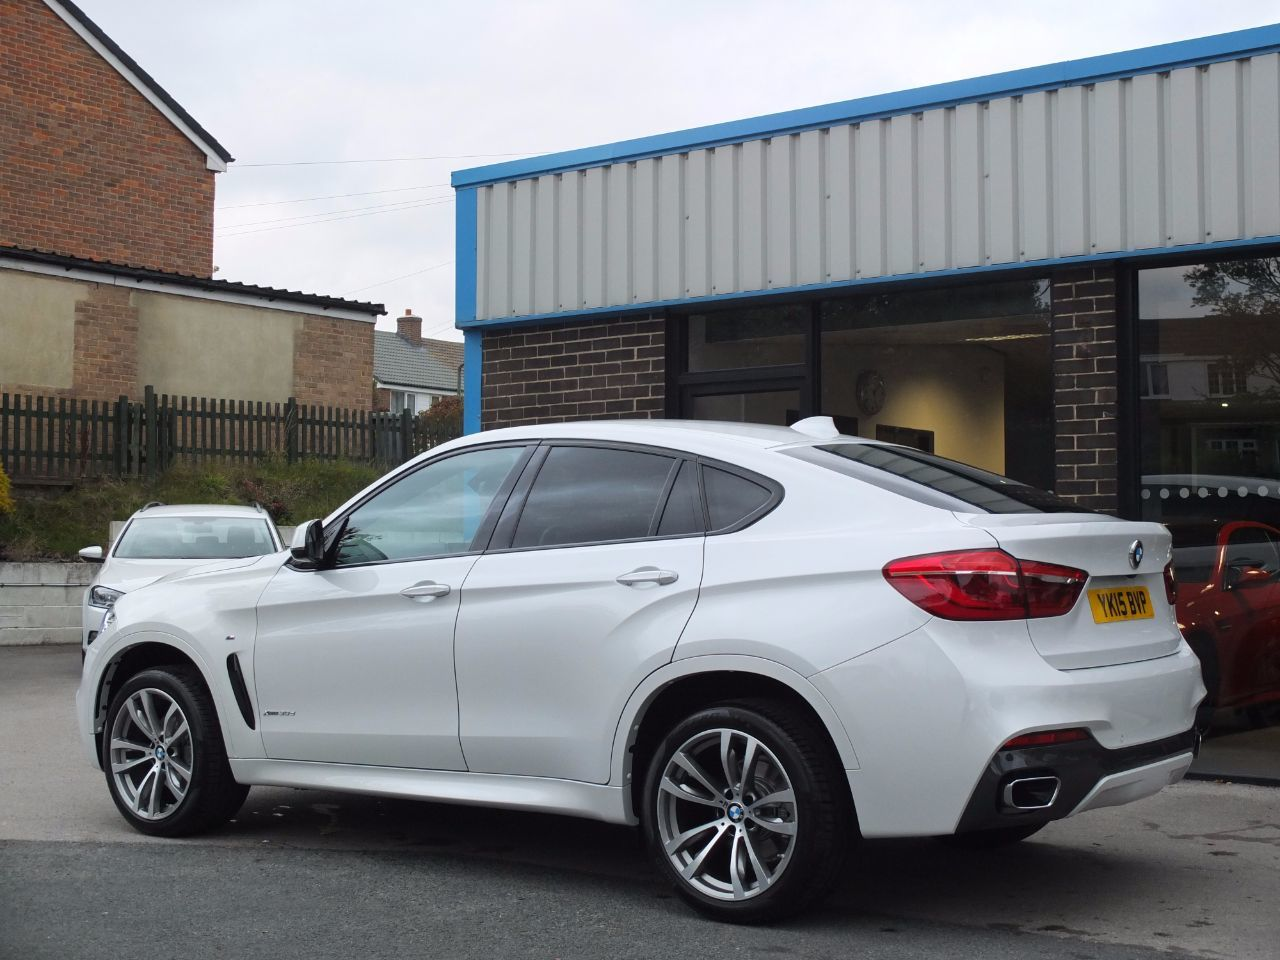 BMW X6 3.0 xDrive30d M Sport Step Auto Coupe Diesel Mineral White Metallic